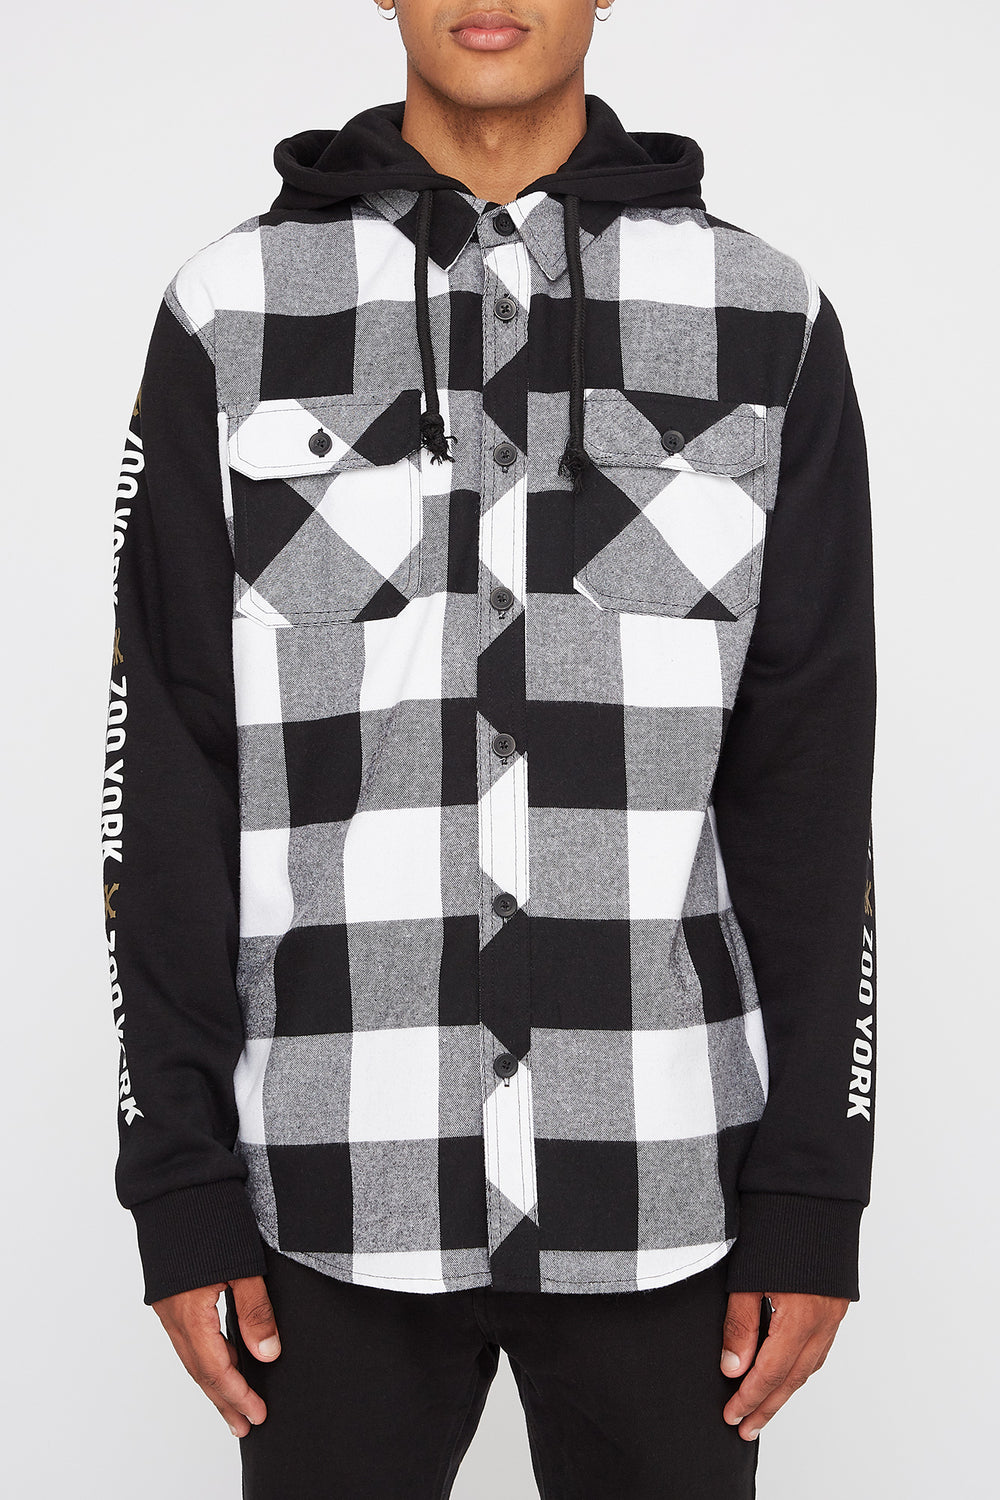 Zoo York Mens Flannel Hoodie White